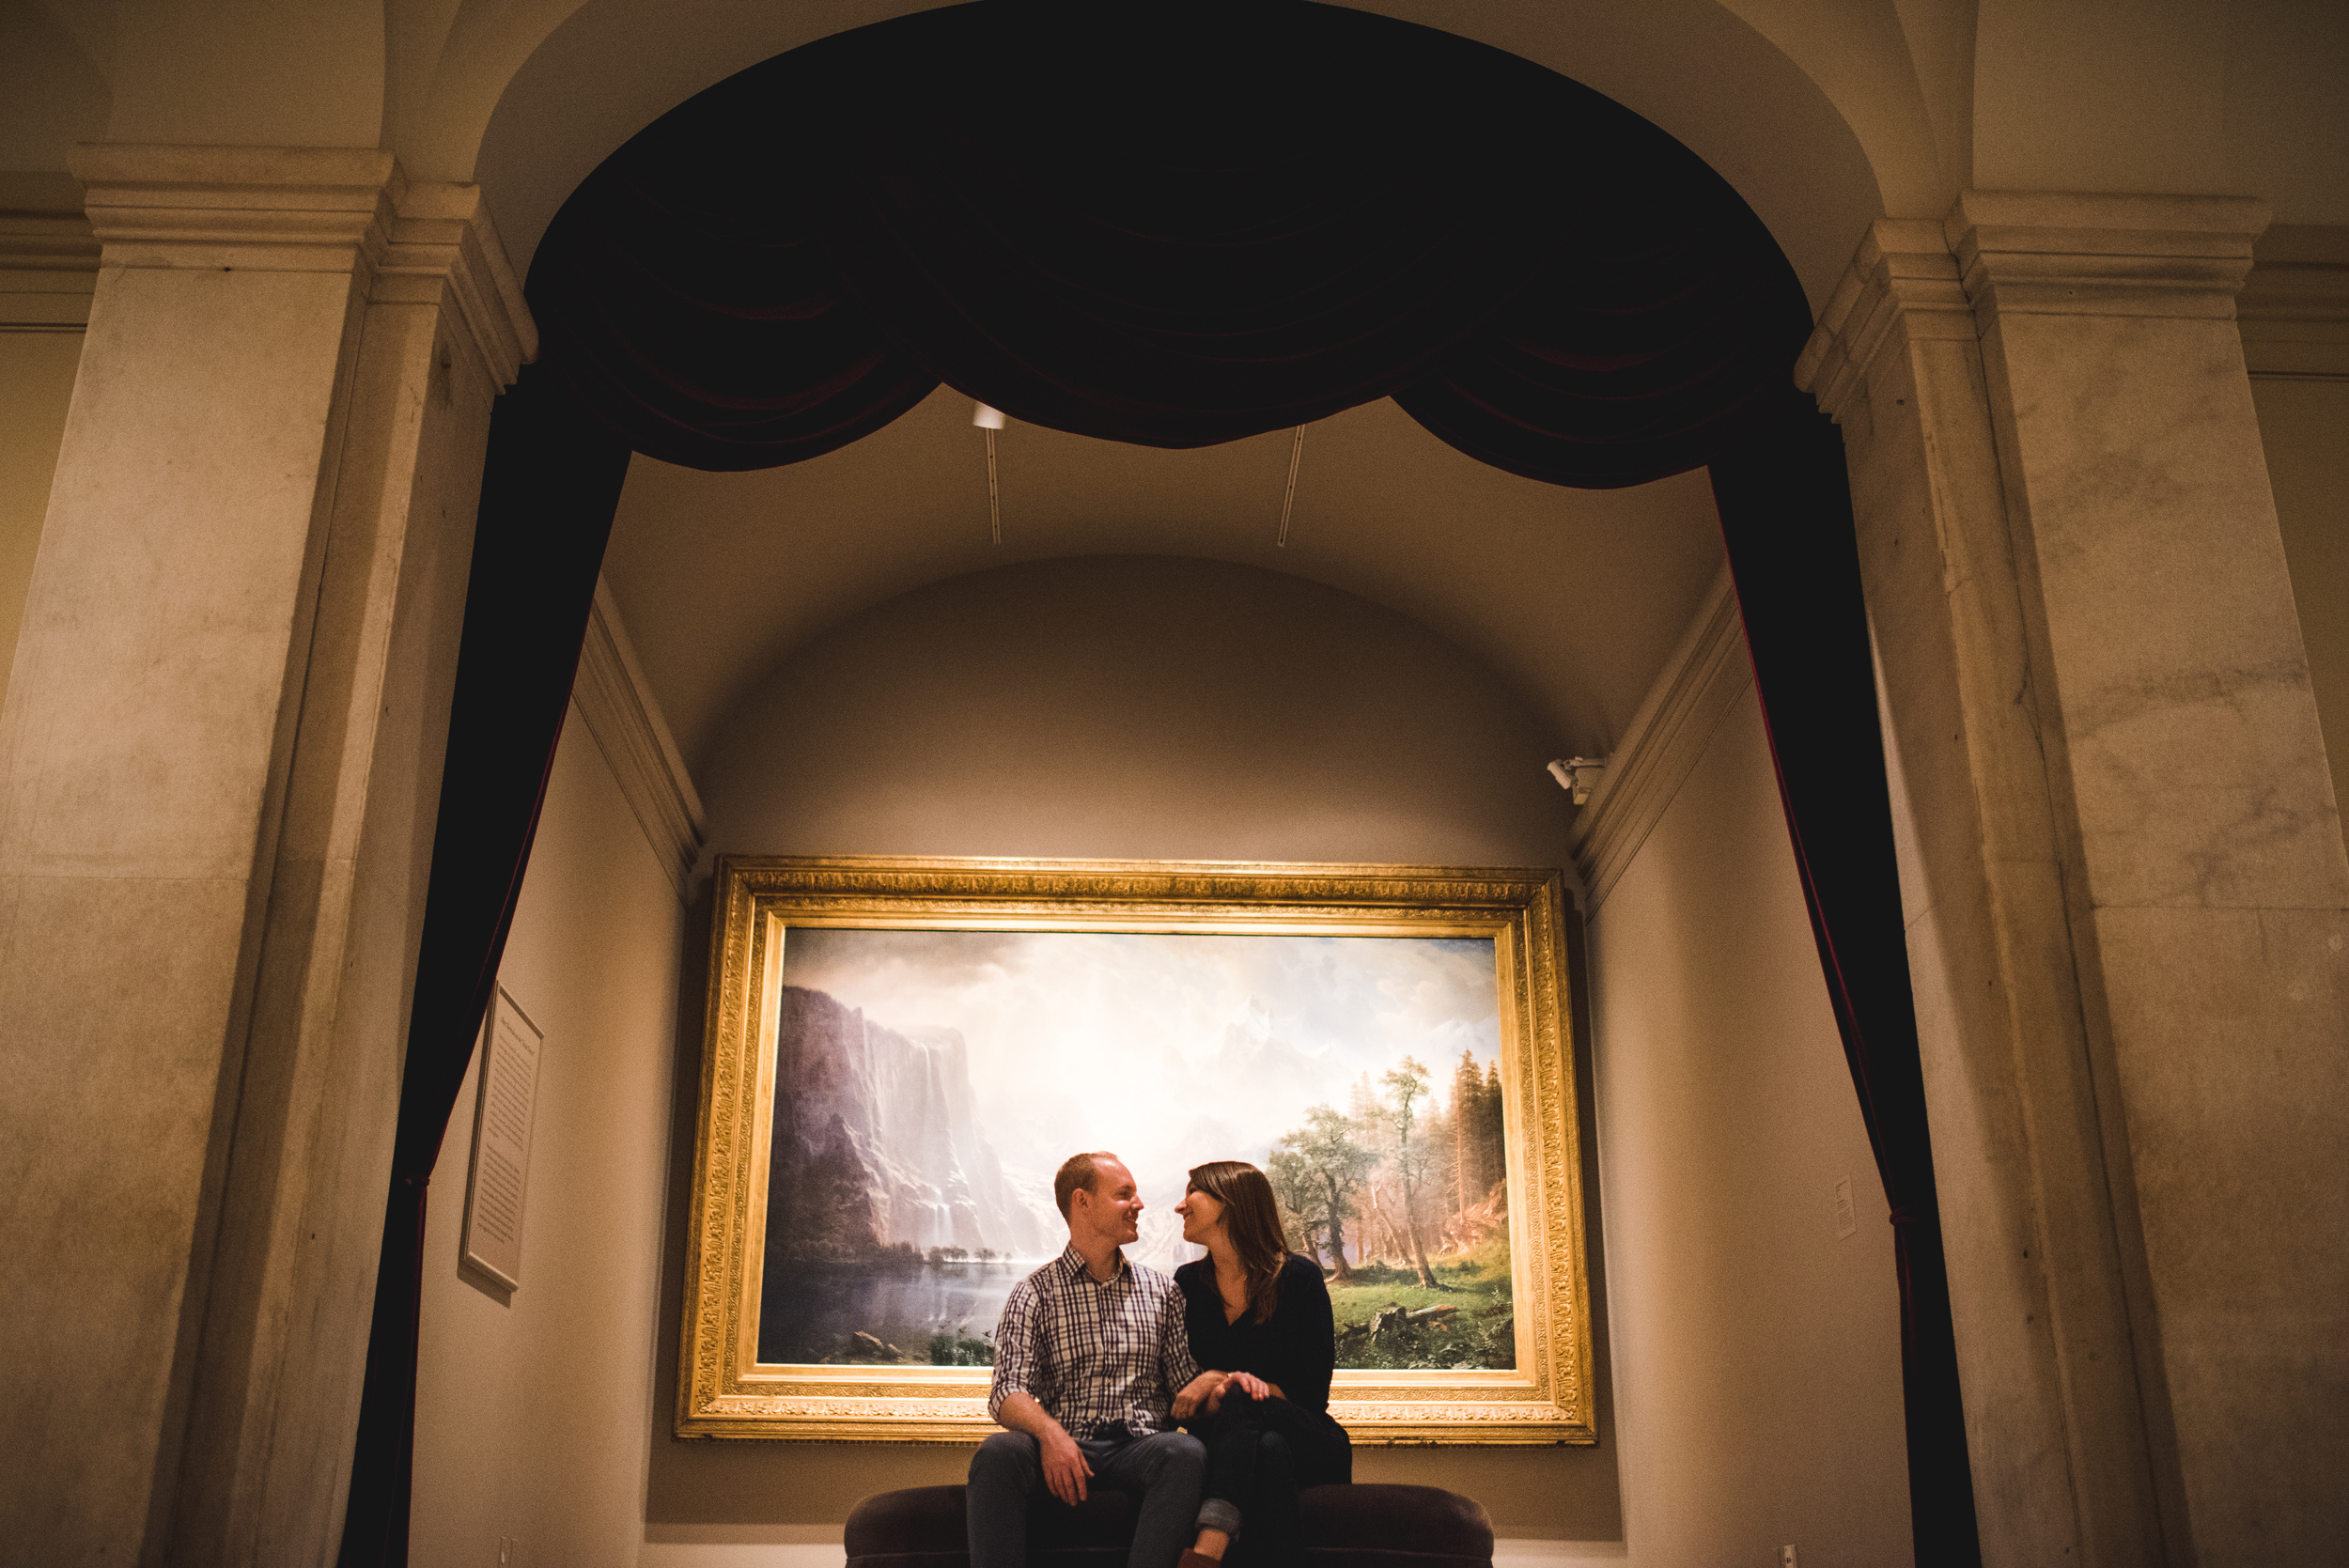 Smithsonian American Art Museum engagement session by Mantas Kubilinskas-16.jpg